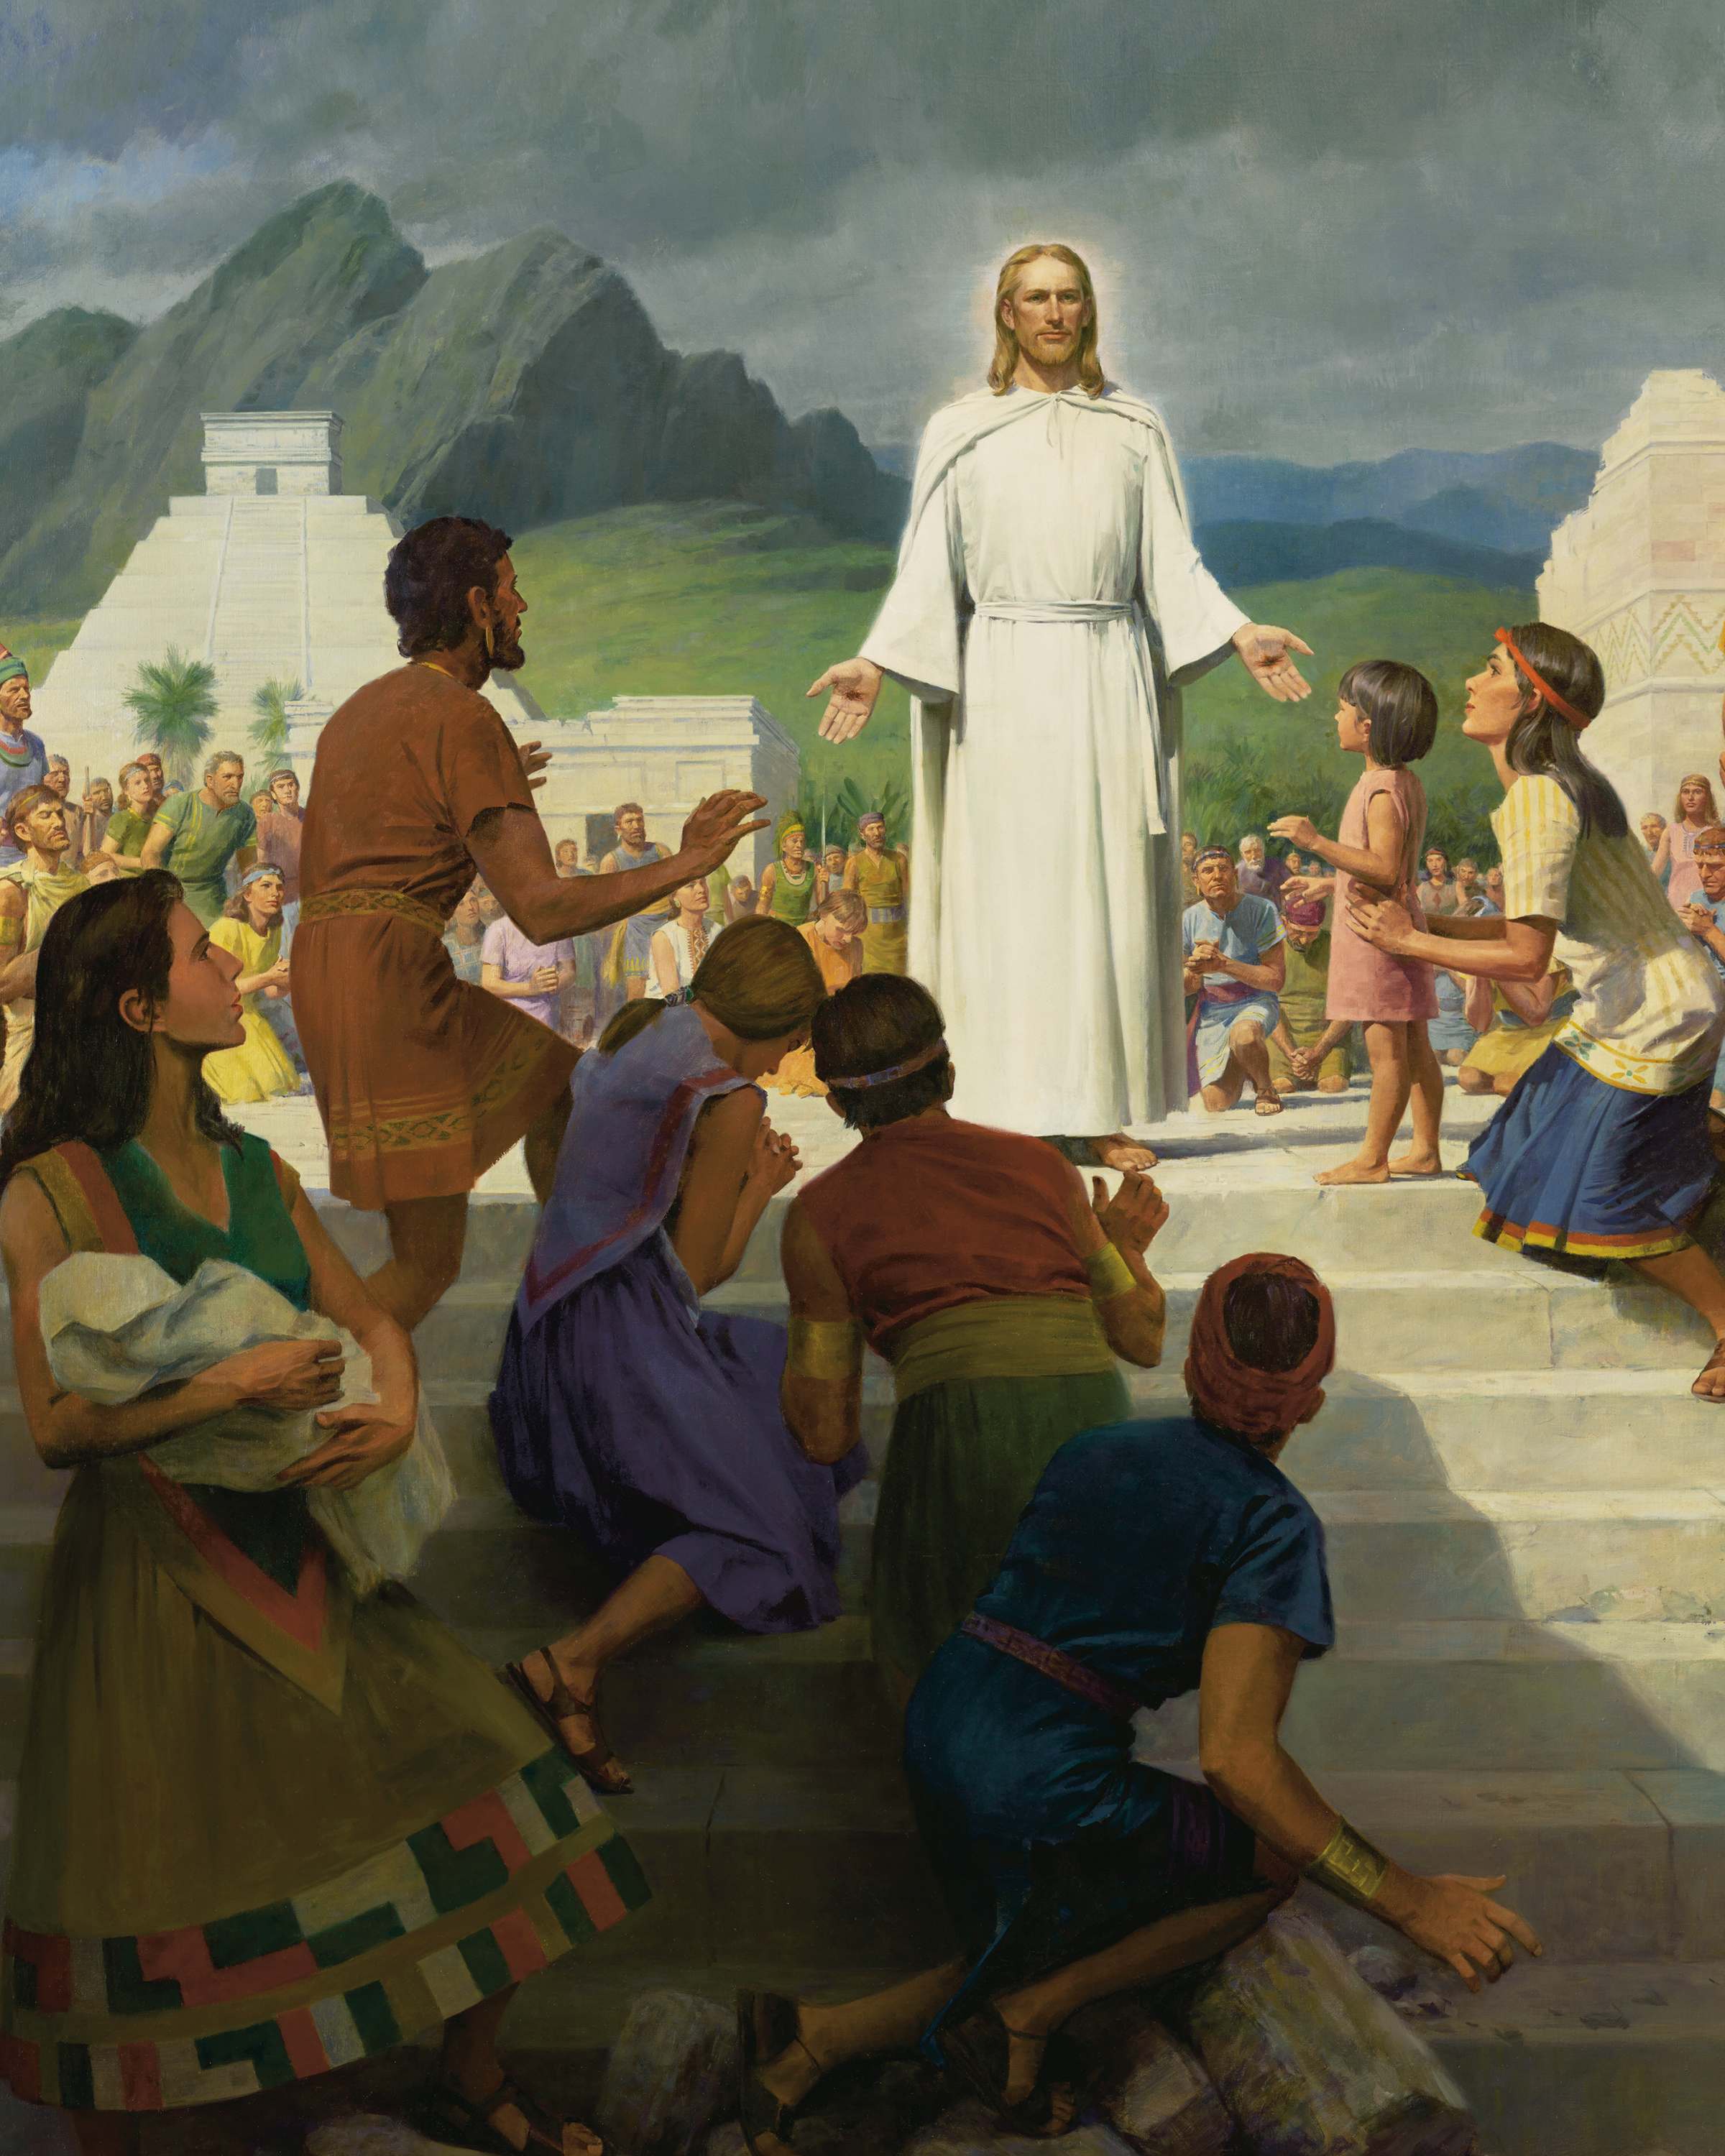 detail from jesus christ visits the americas